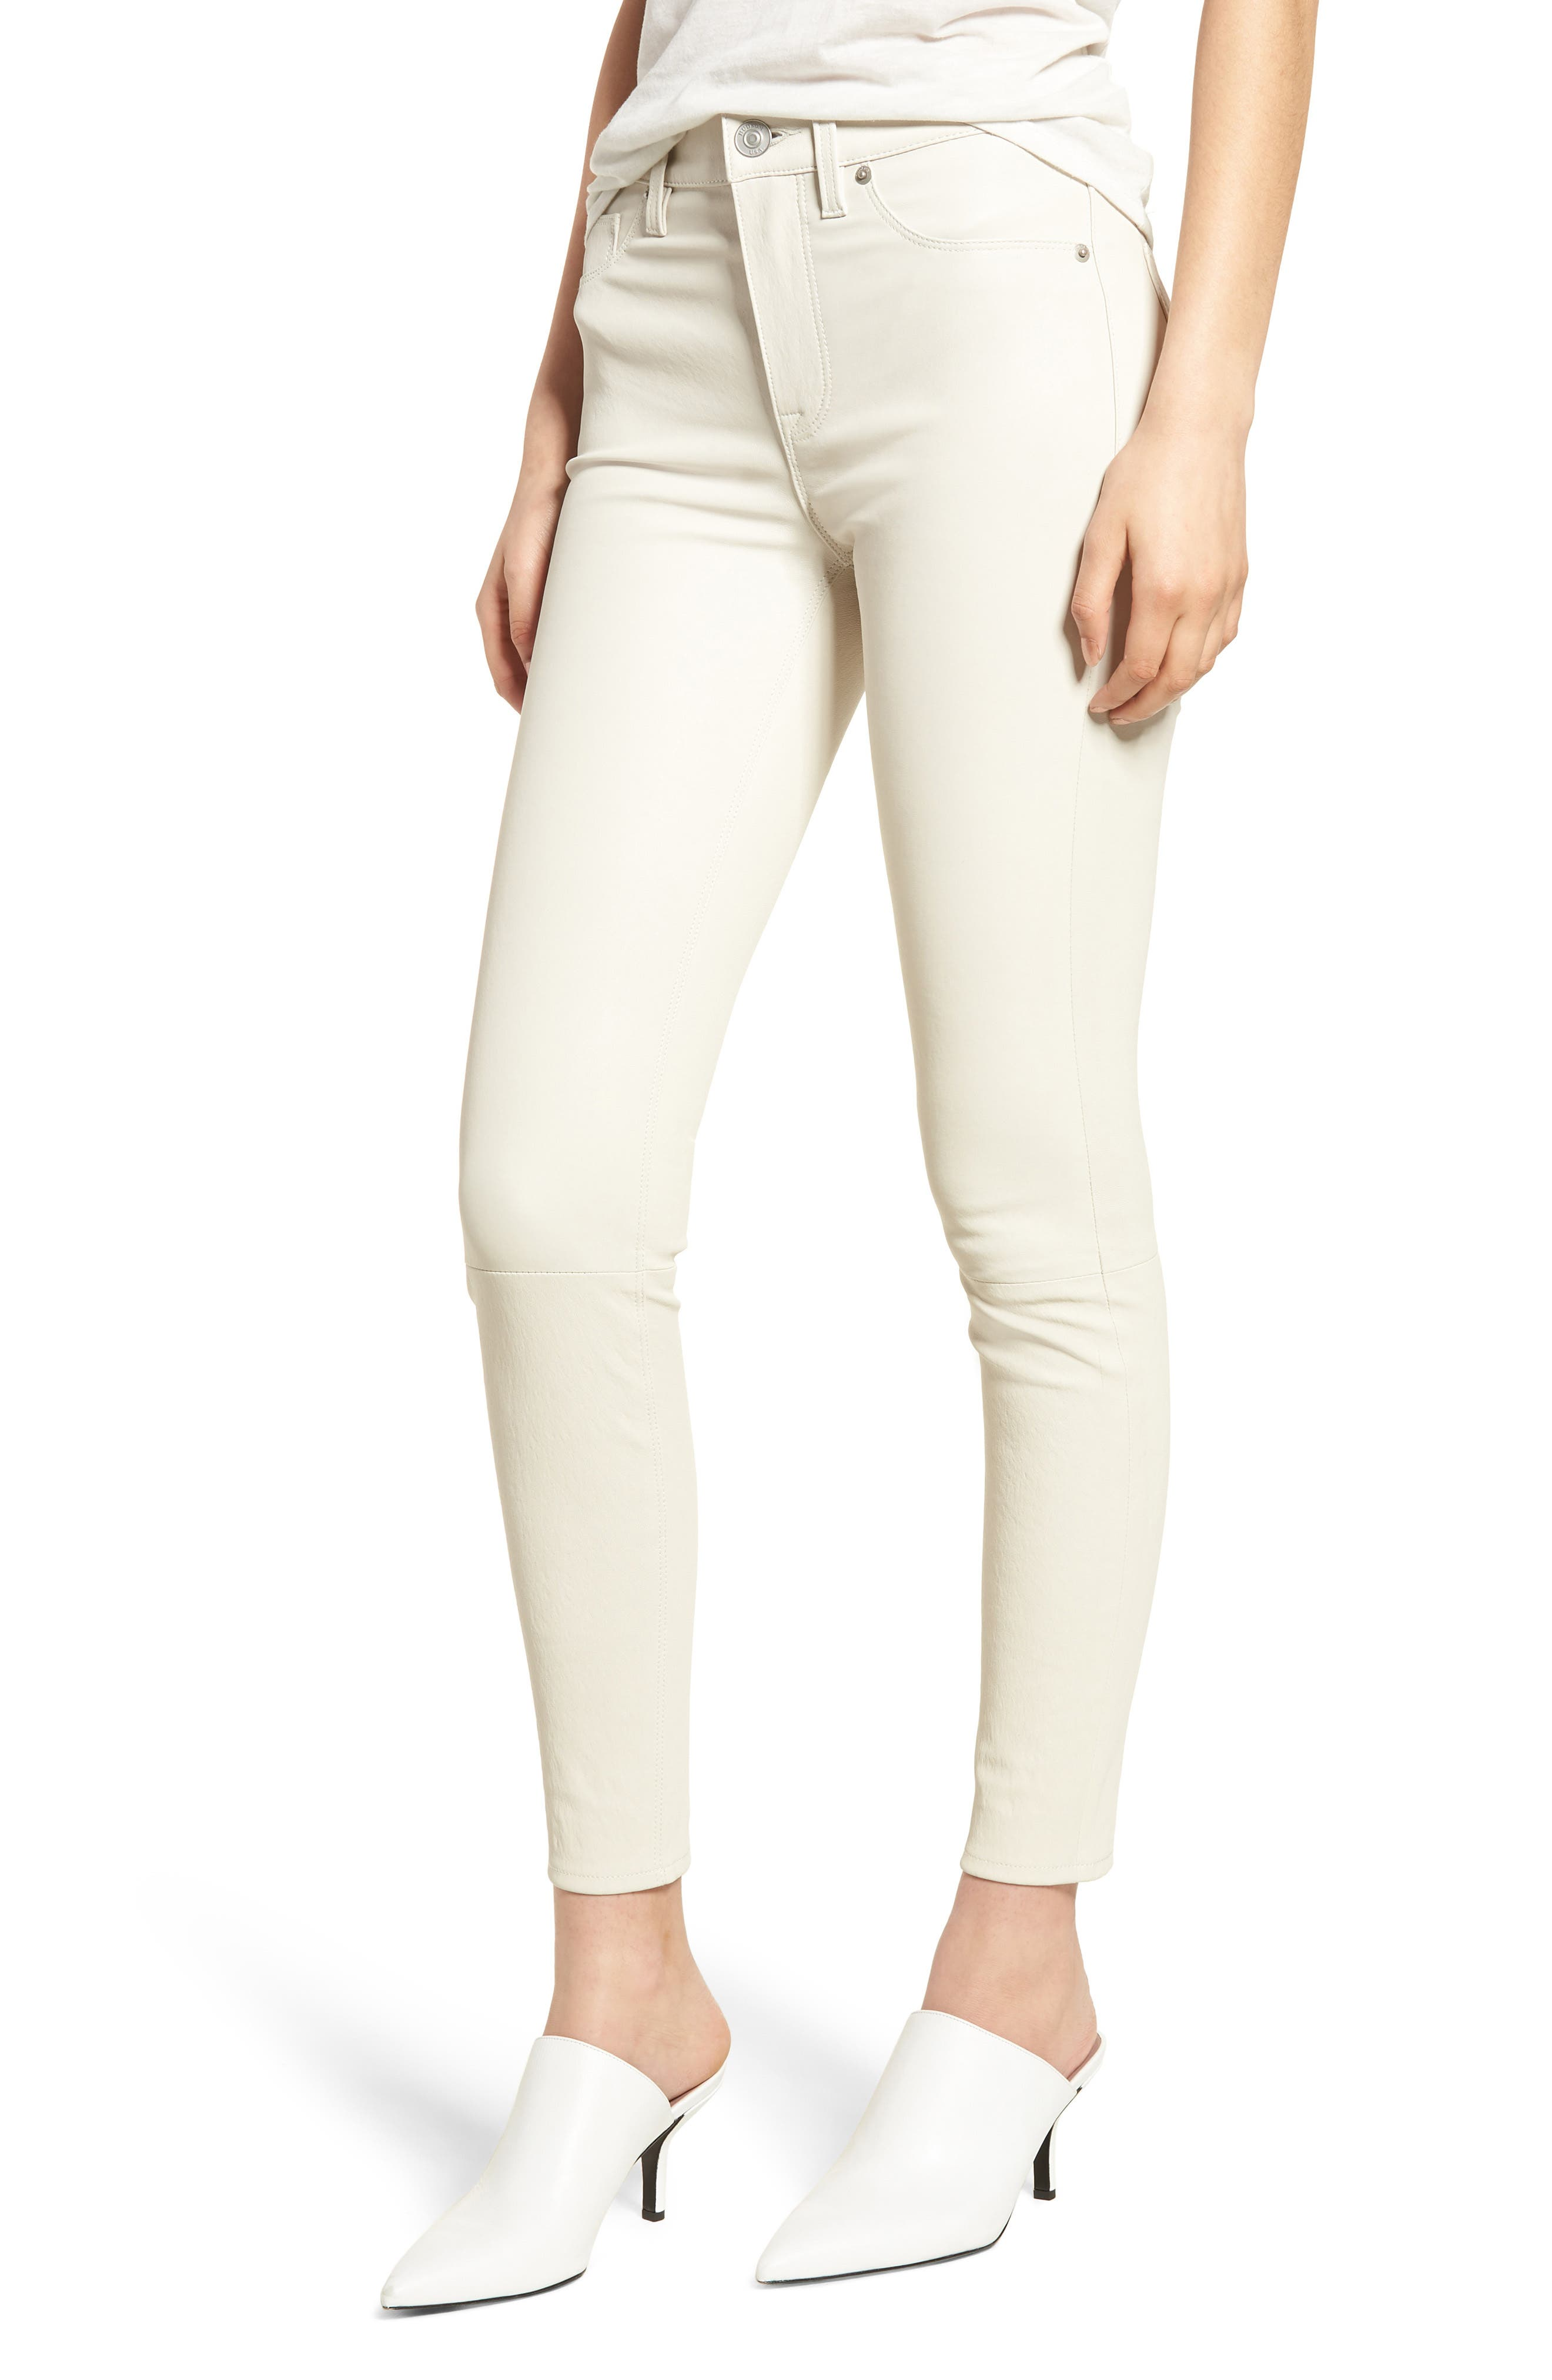 Barbara High Waist Super Skinny Leather Jeans,                             Main thumbnail 1, color,                             PALE WHITE